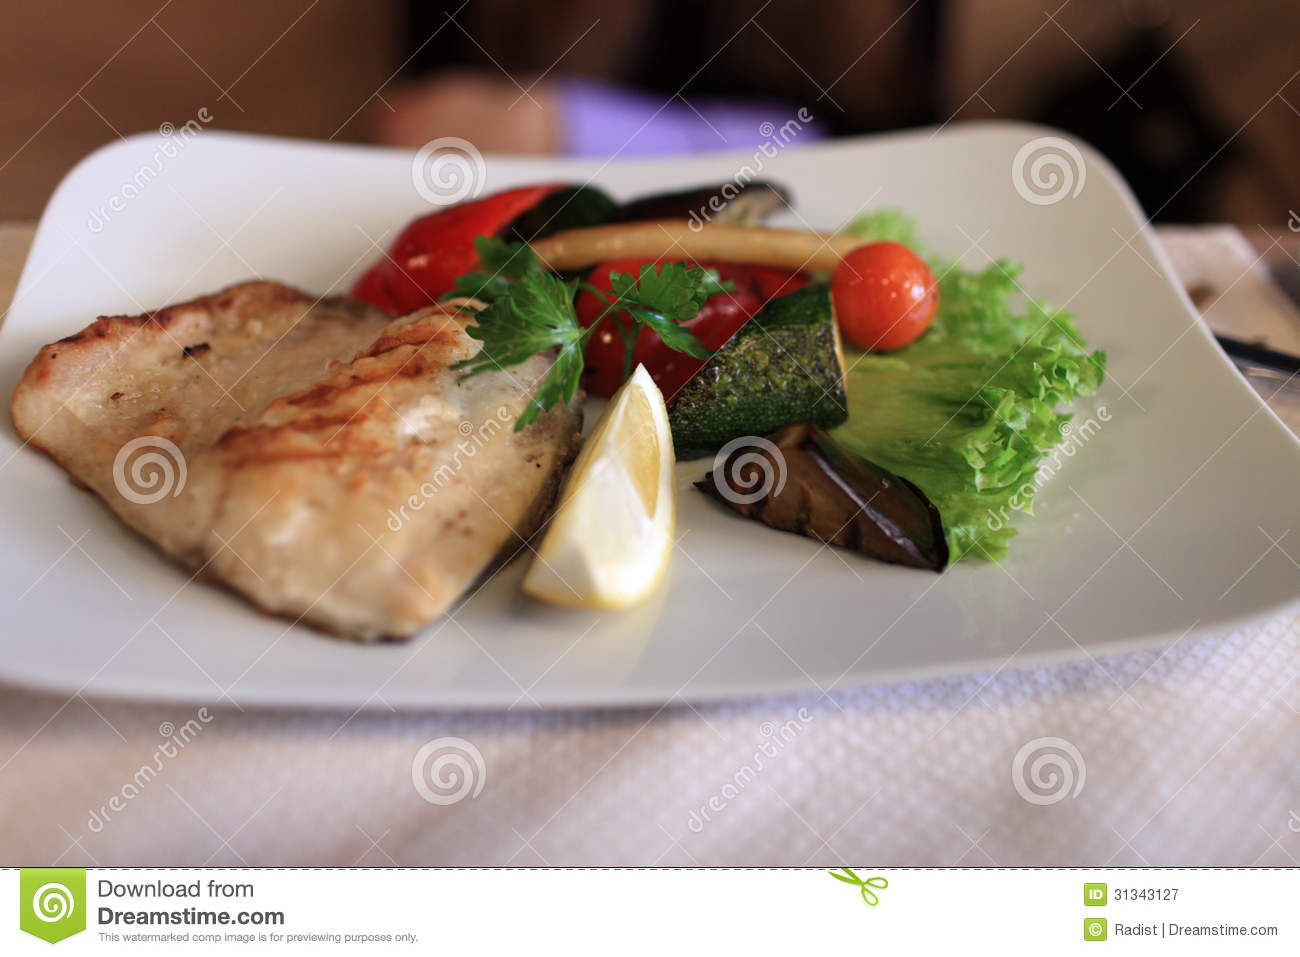 Grilled fish with vegetables royalty free stock for Fish with vegetables